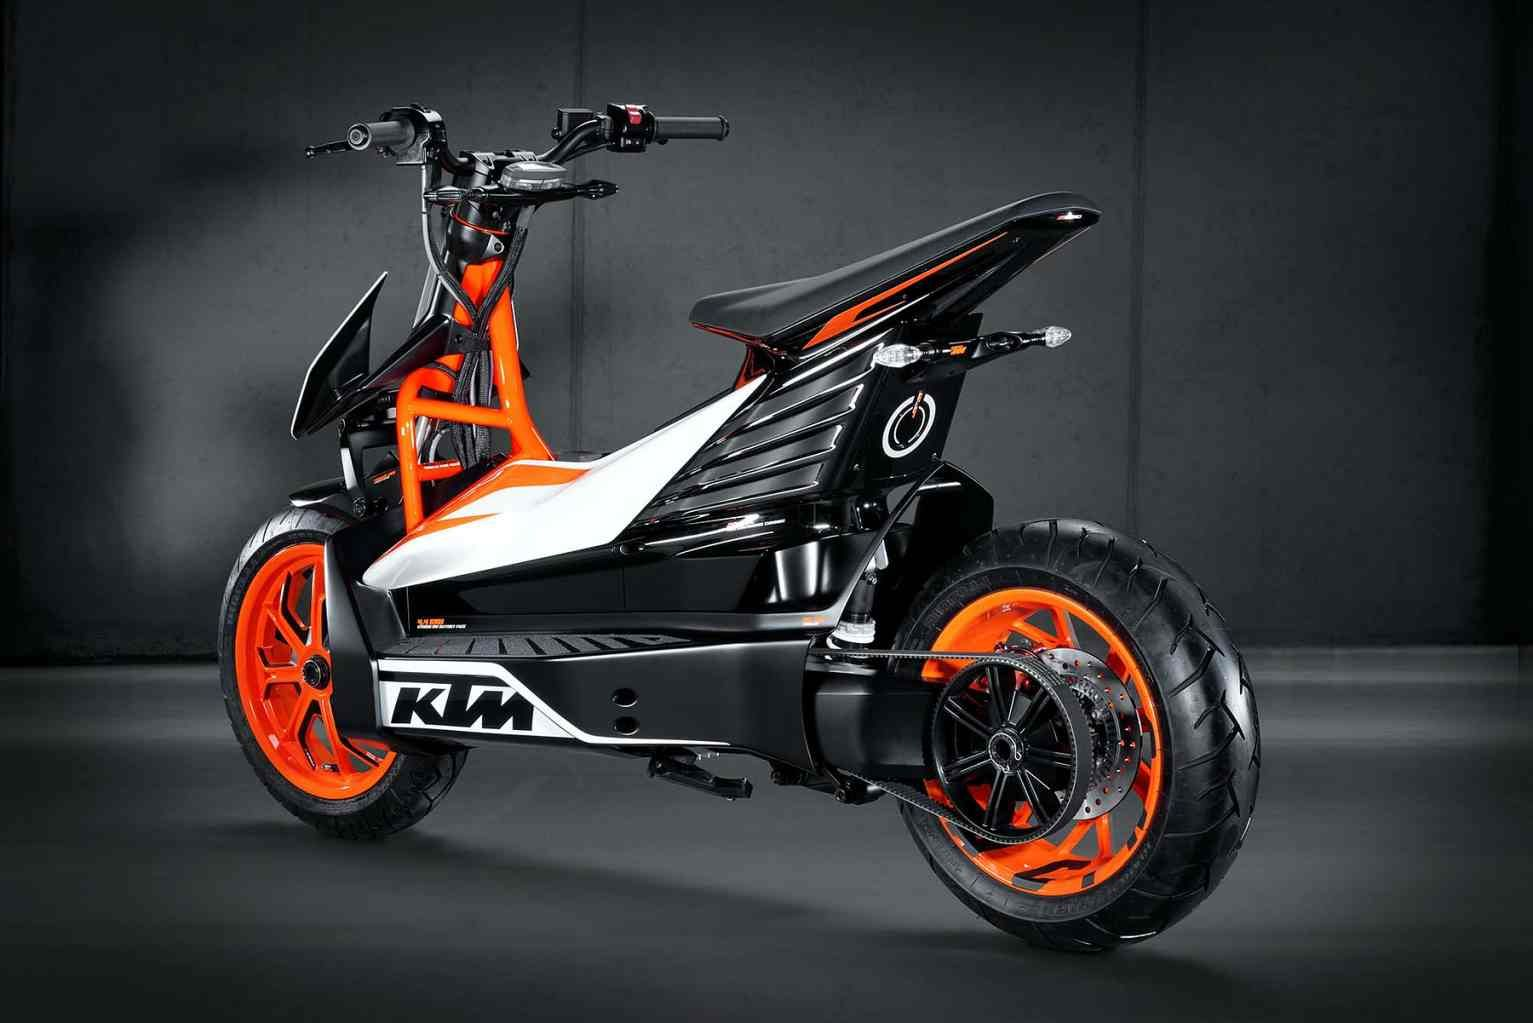 Ktm E Speed Electric Scooter Concept Design Is This Electric Scooter Ktm Electric Motorcycle